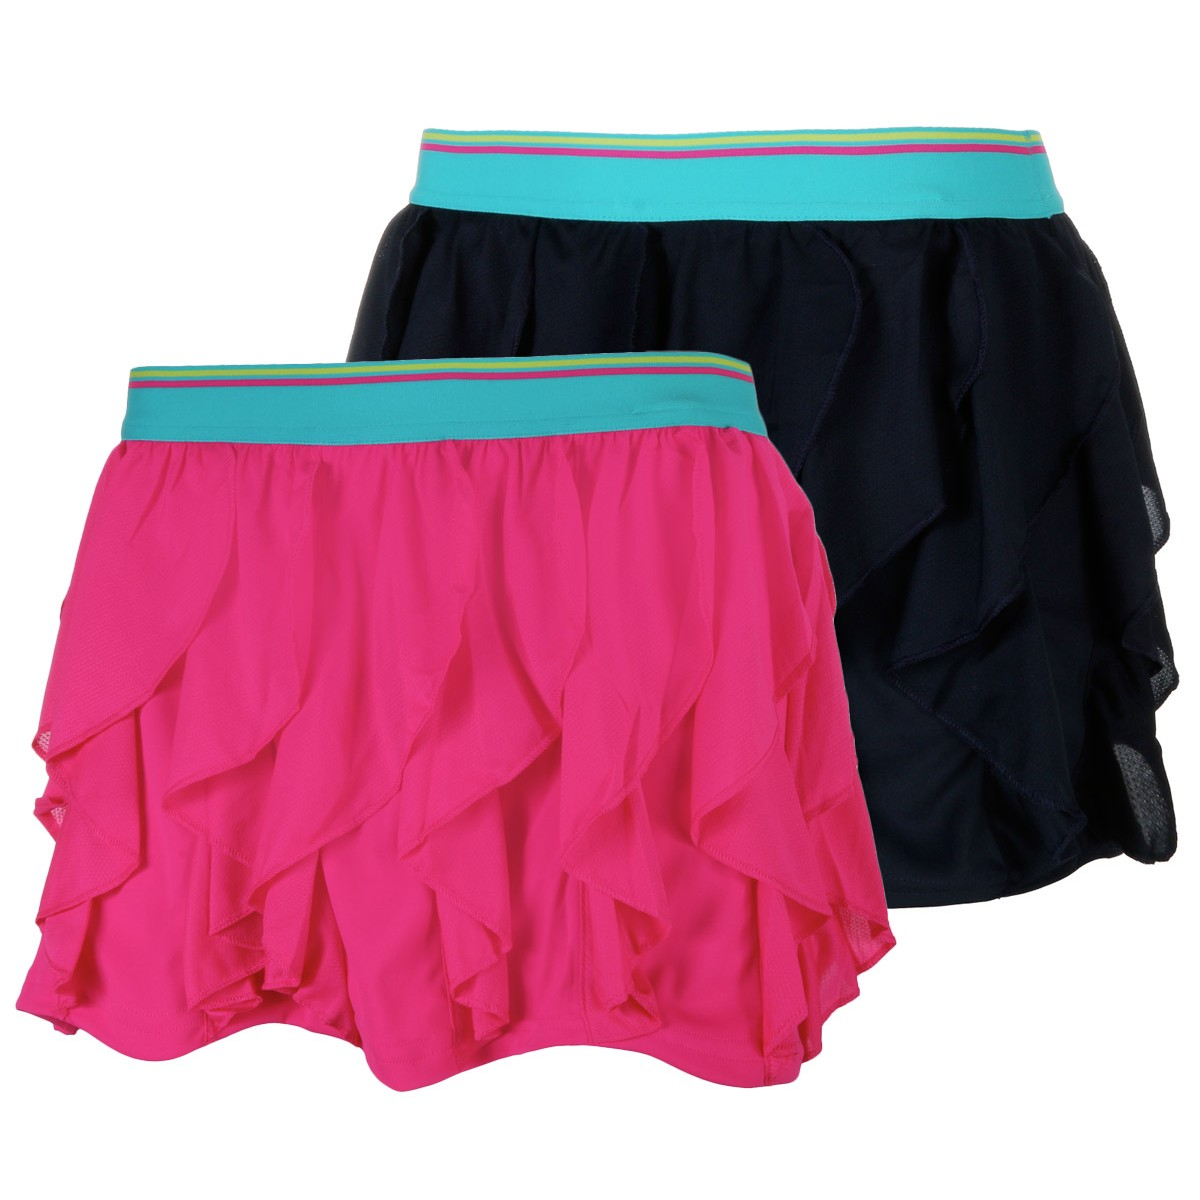 Juniors Adidas Frilly Skirt Adidas Juniors Clothing